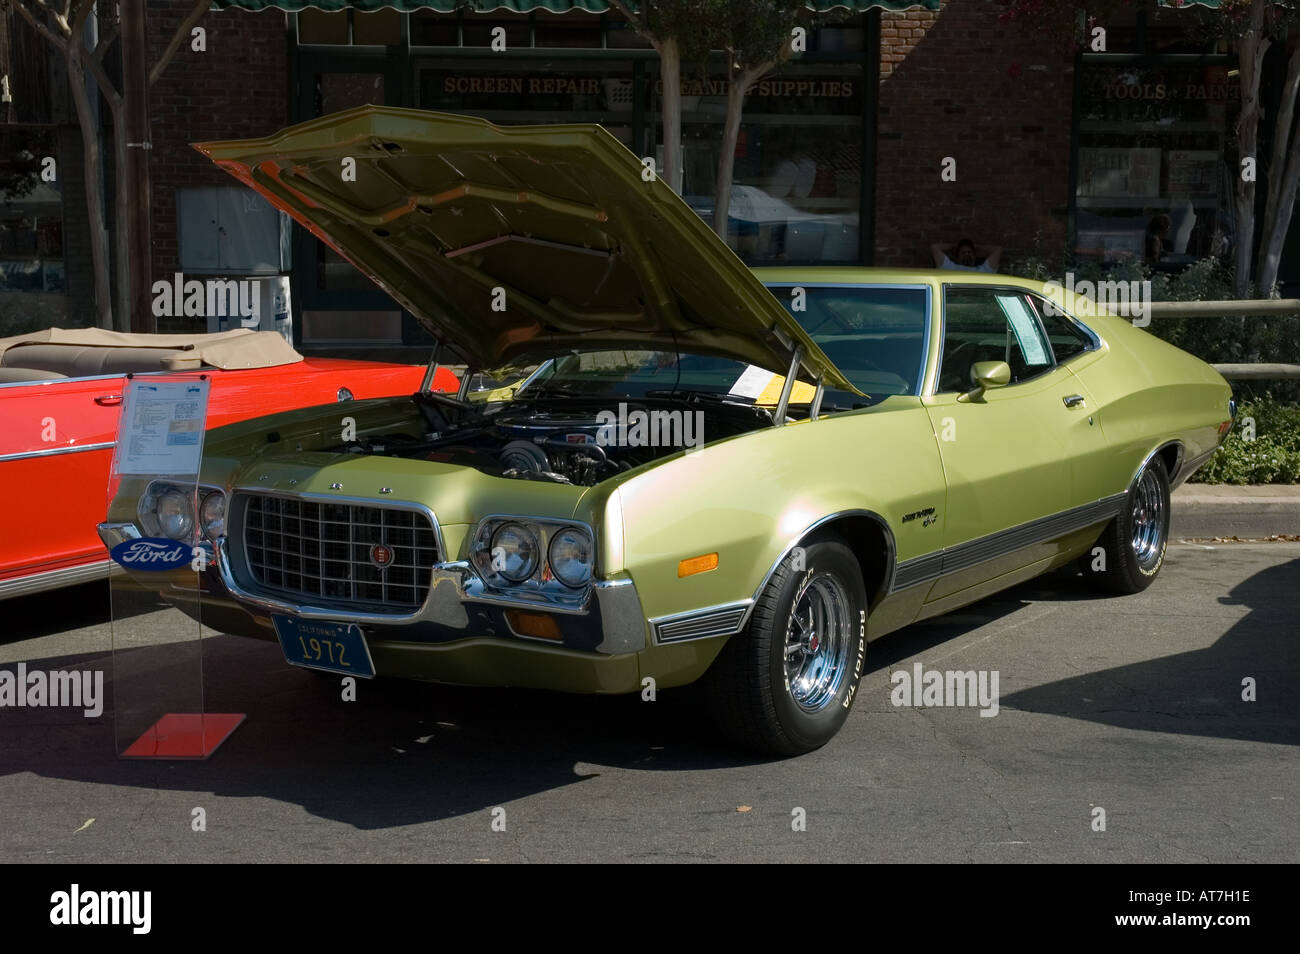 Ford Torino Stock Photos Images Alamy 1970 Gran Specs Los Angeles California Car Show Antique Customized 1972 72 Green Open Hood Engine